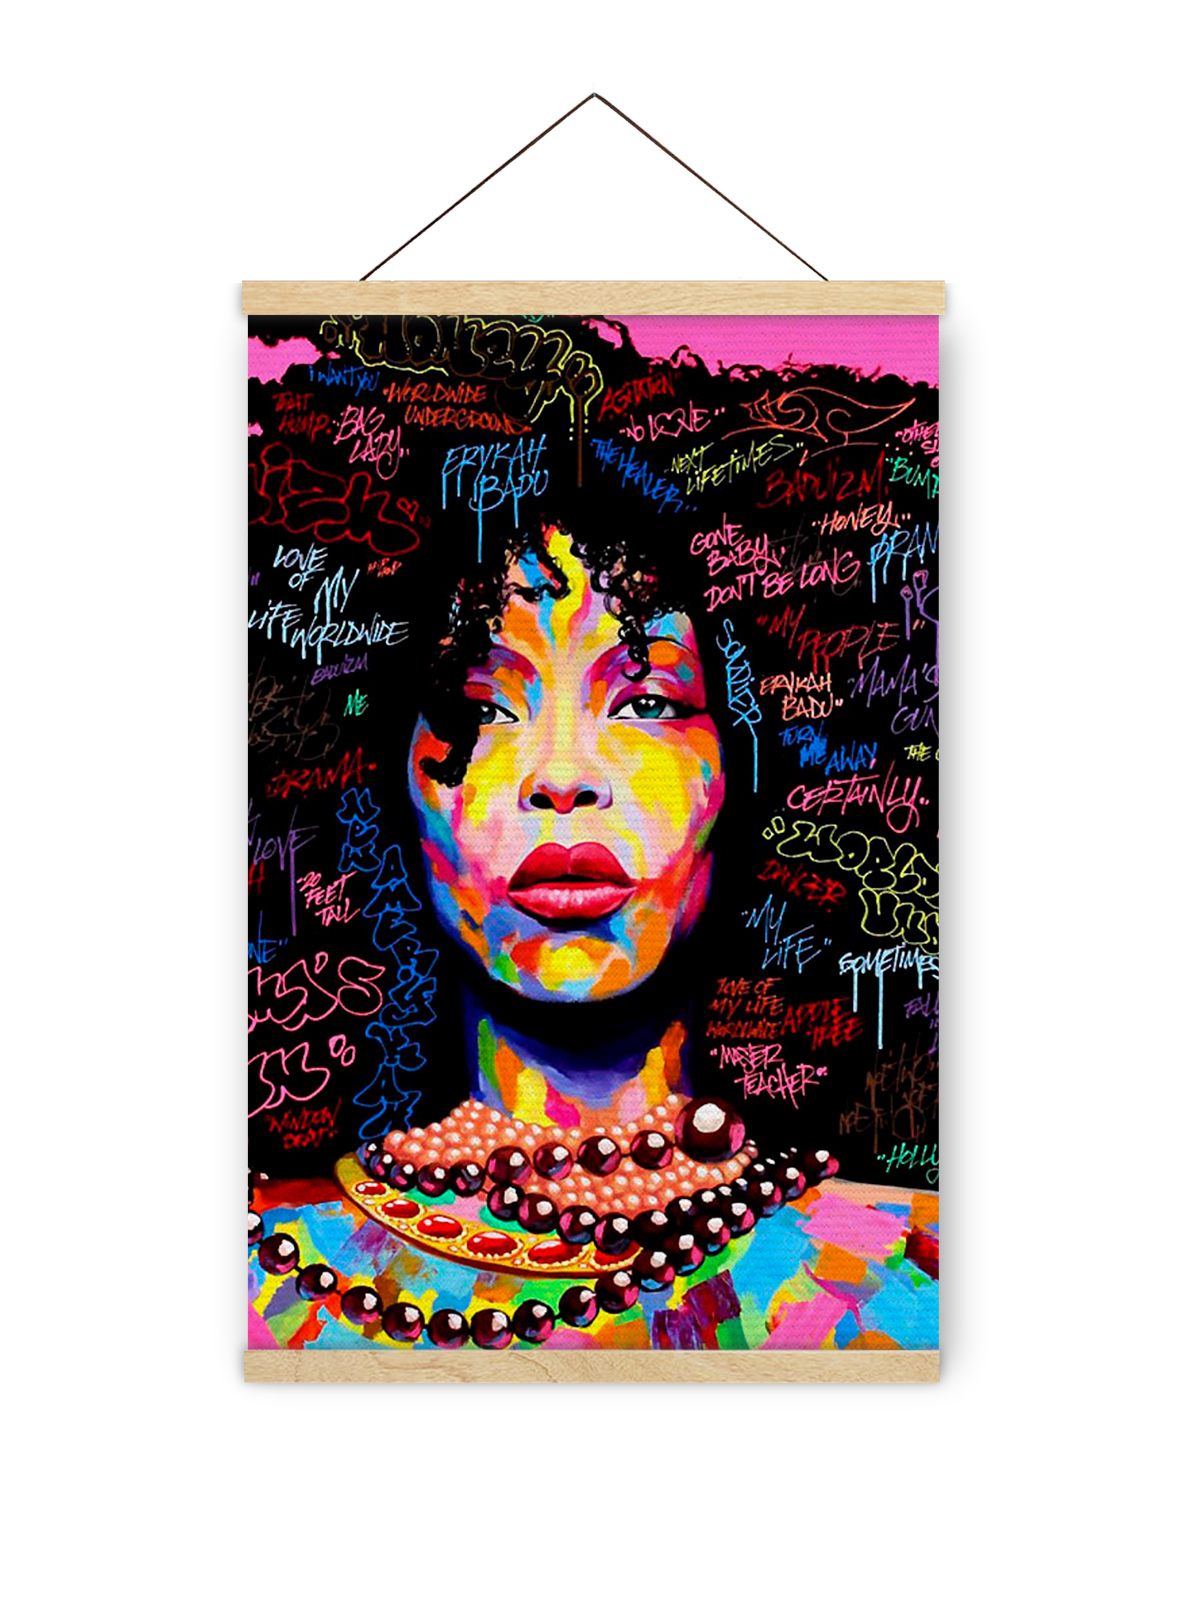 awkward styles wooden magnetic poster hanger frame african pop art canvas photo picture poster artwork print for framing hanging kit wooden poster